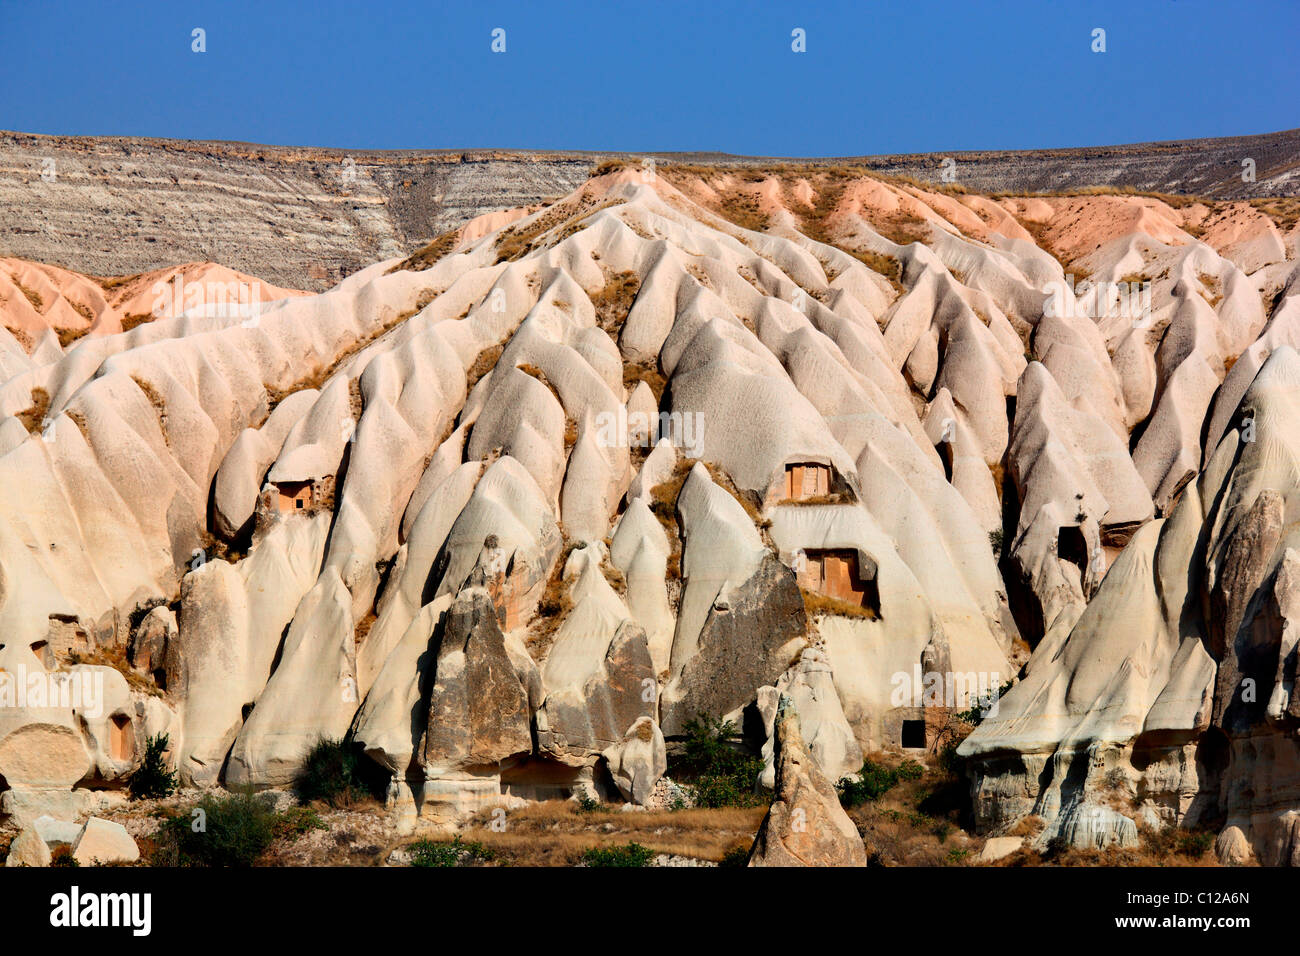 Photo from the 'Sword valley' ('Kiliclar Vadisi') that looks like huge melting vanilla ice cream, - Stock Image